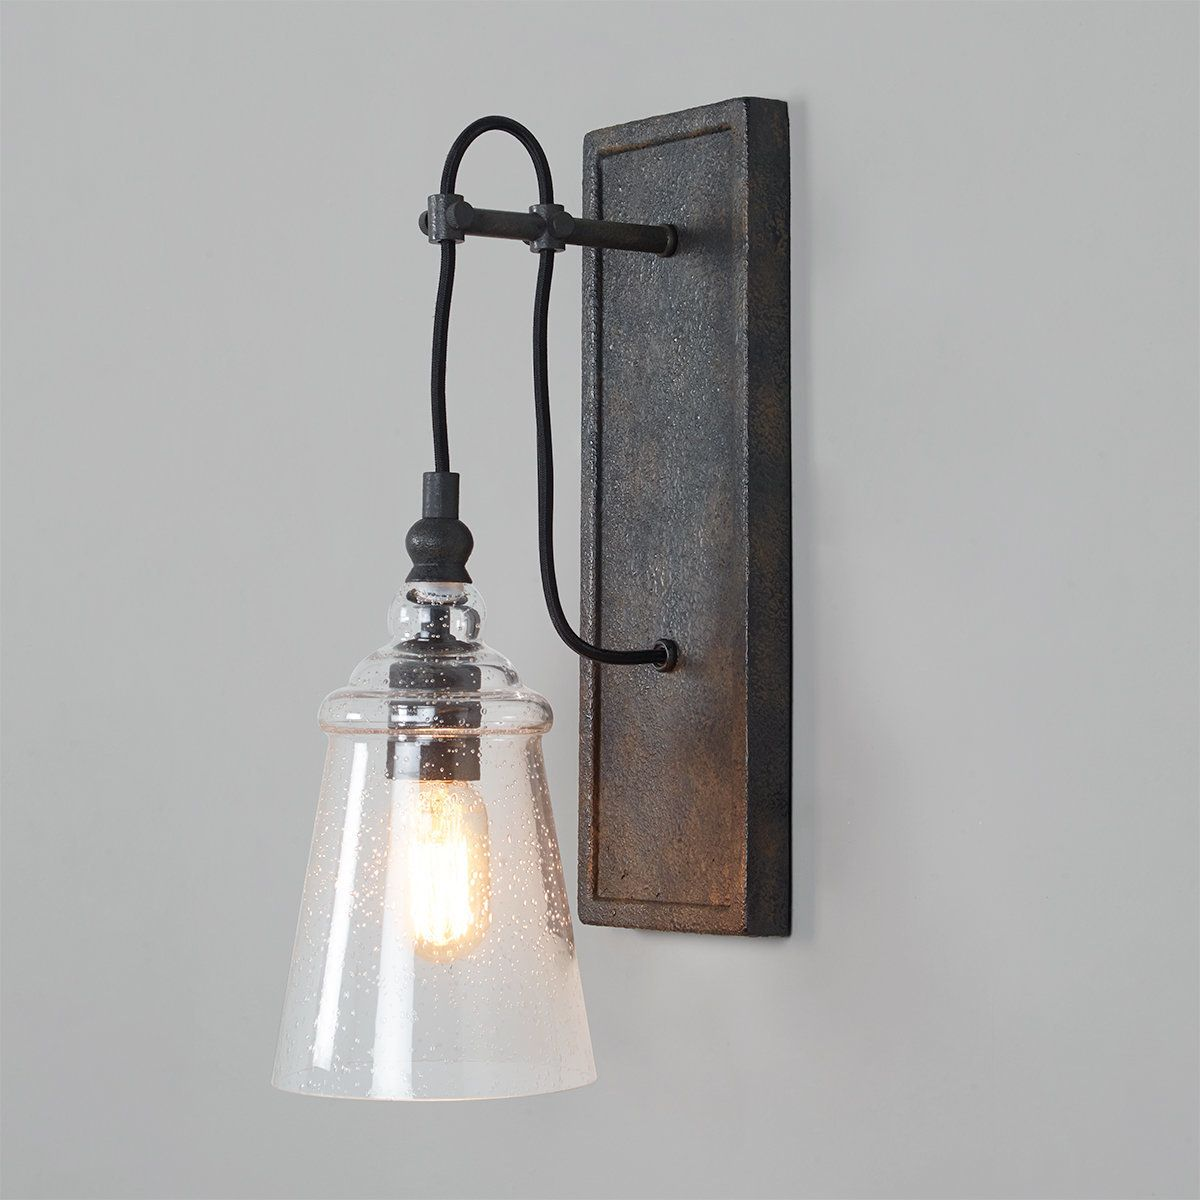 Historic Industrial Seeded Sconce In 2021 Rustic Wall Lighting Rustic Wall Sconces Industrial Wall Sconce Rustic wall light fixtures